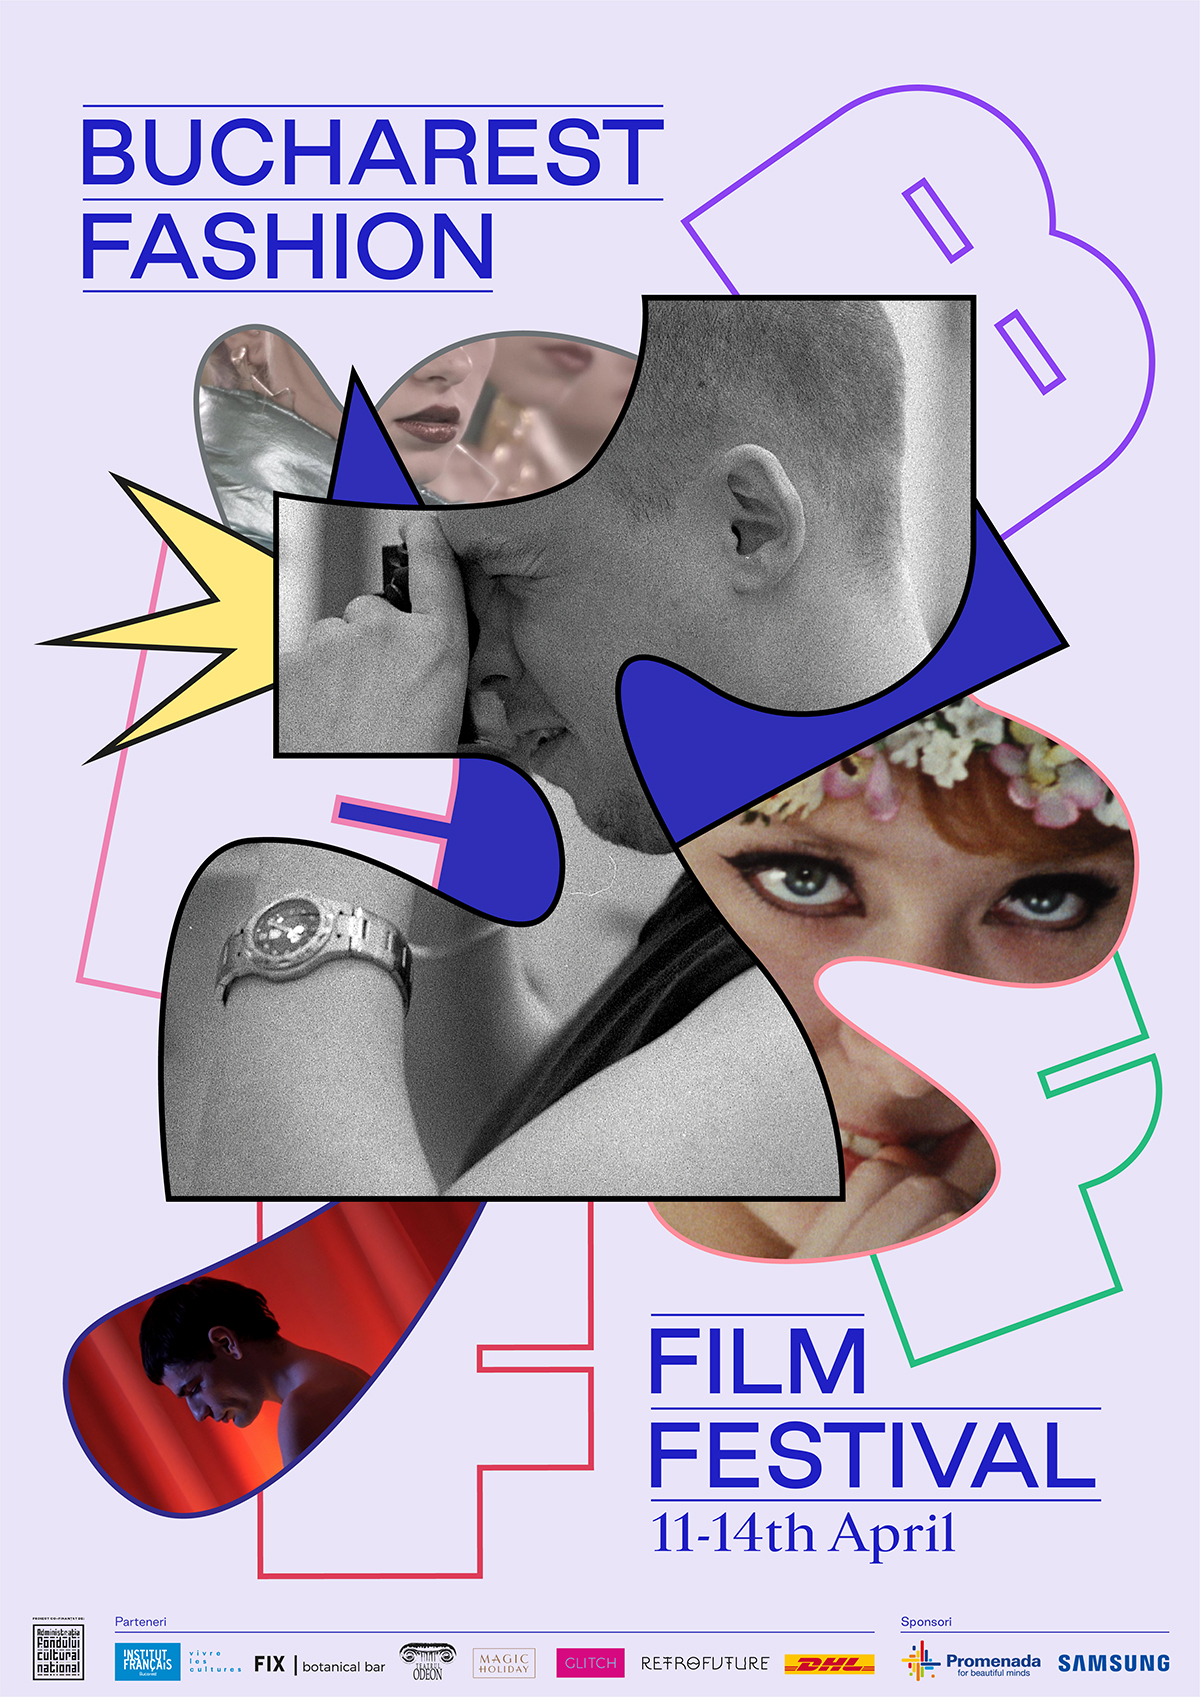 Bucharest Fashion Film Festival 2019